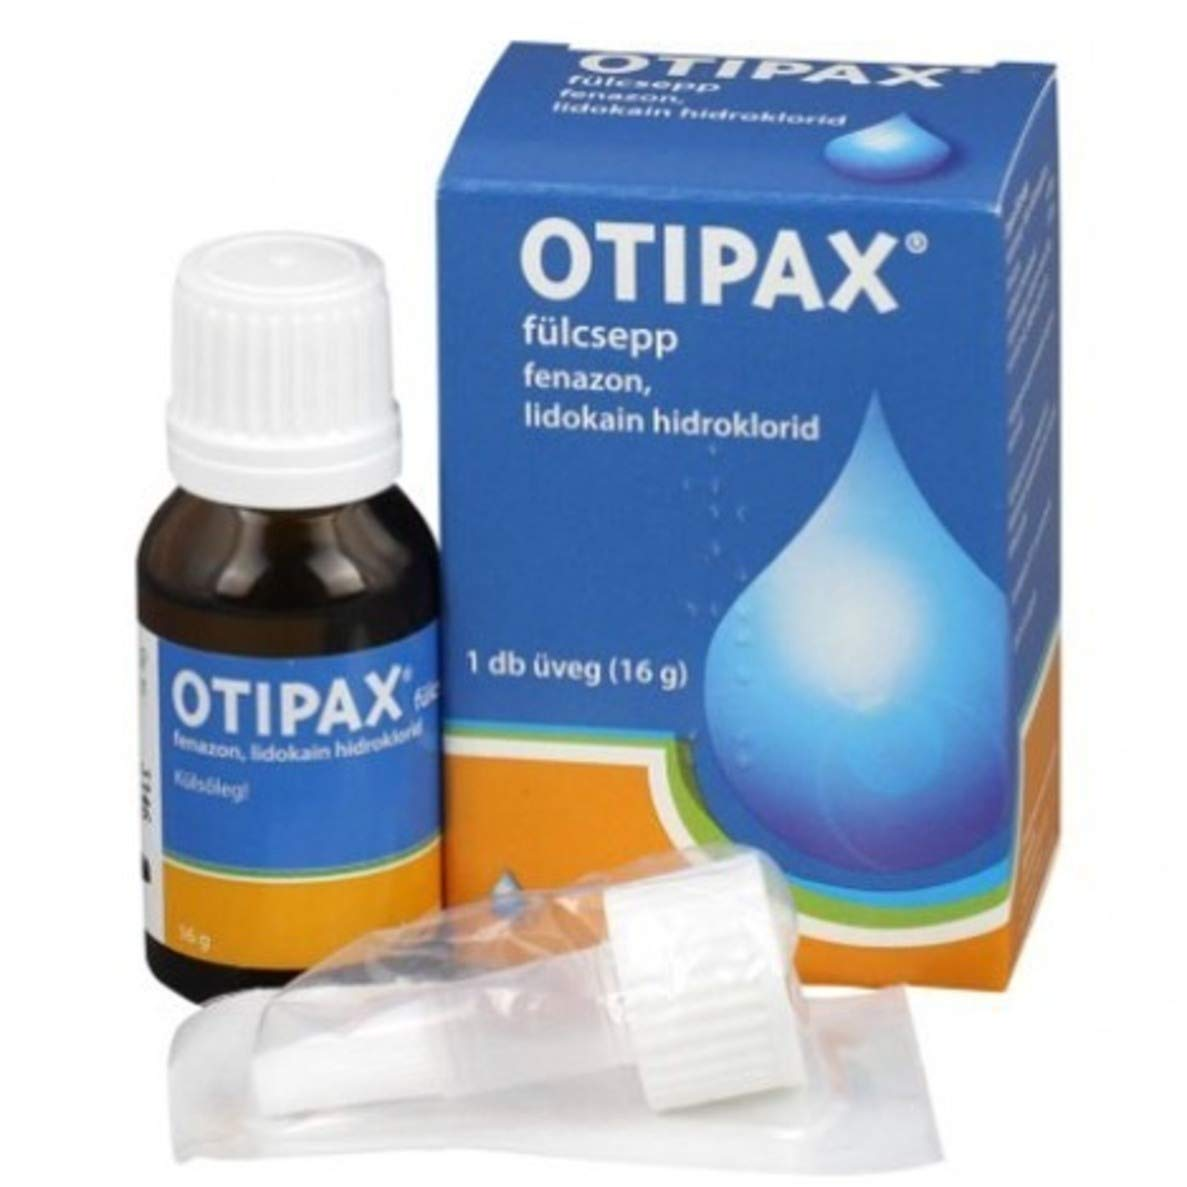 Otipax 16g Ear Drops for Ease Ear Pain Inflammation Relief Earwax